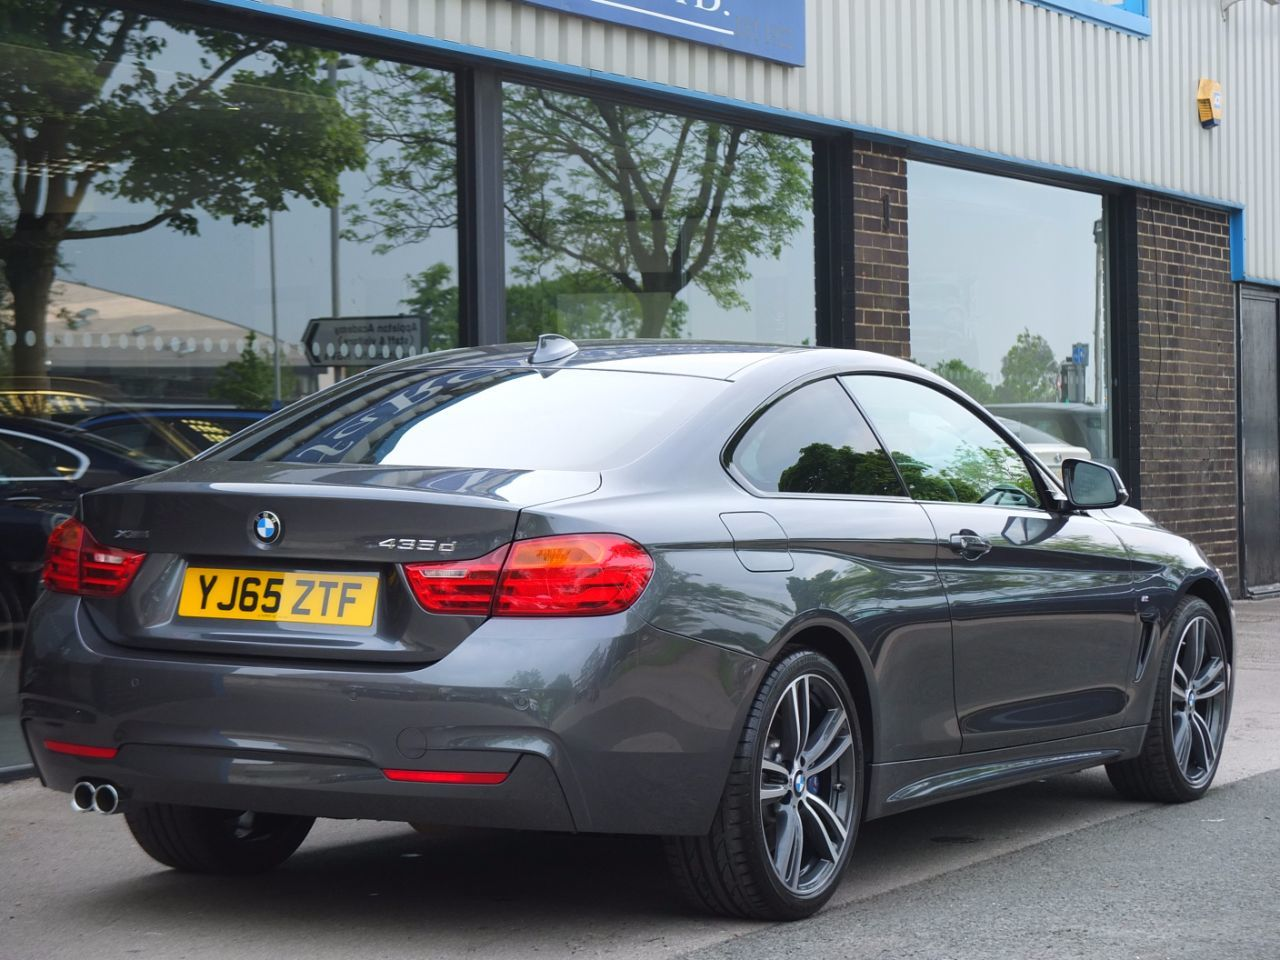 BMW 4 Series 3.0 435d xDrive M Sport Plus Coupe Auto Coupe Diesel Mineral Grey Metallic